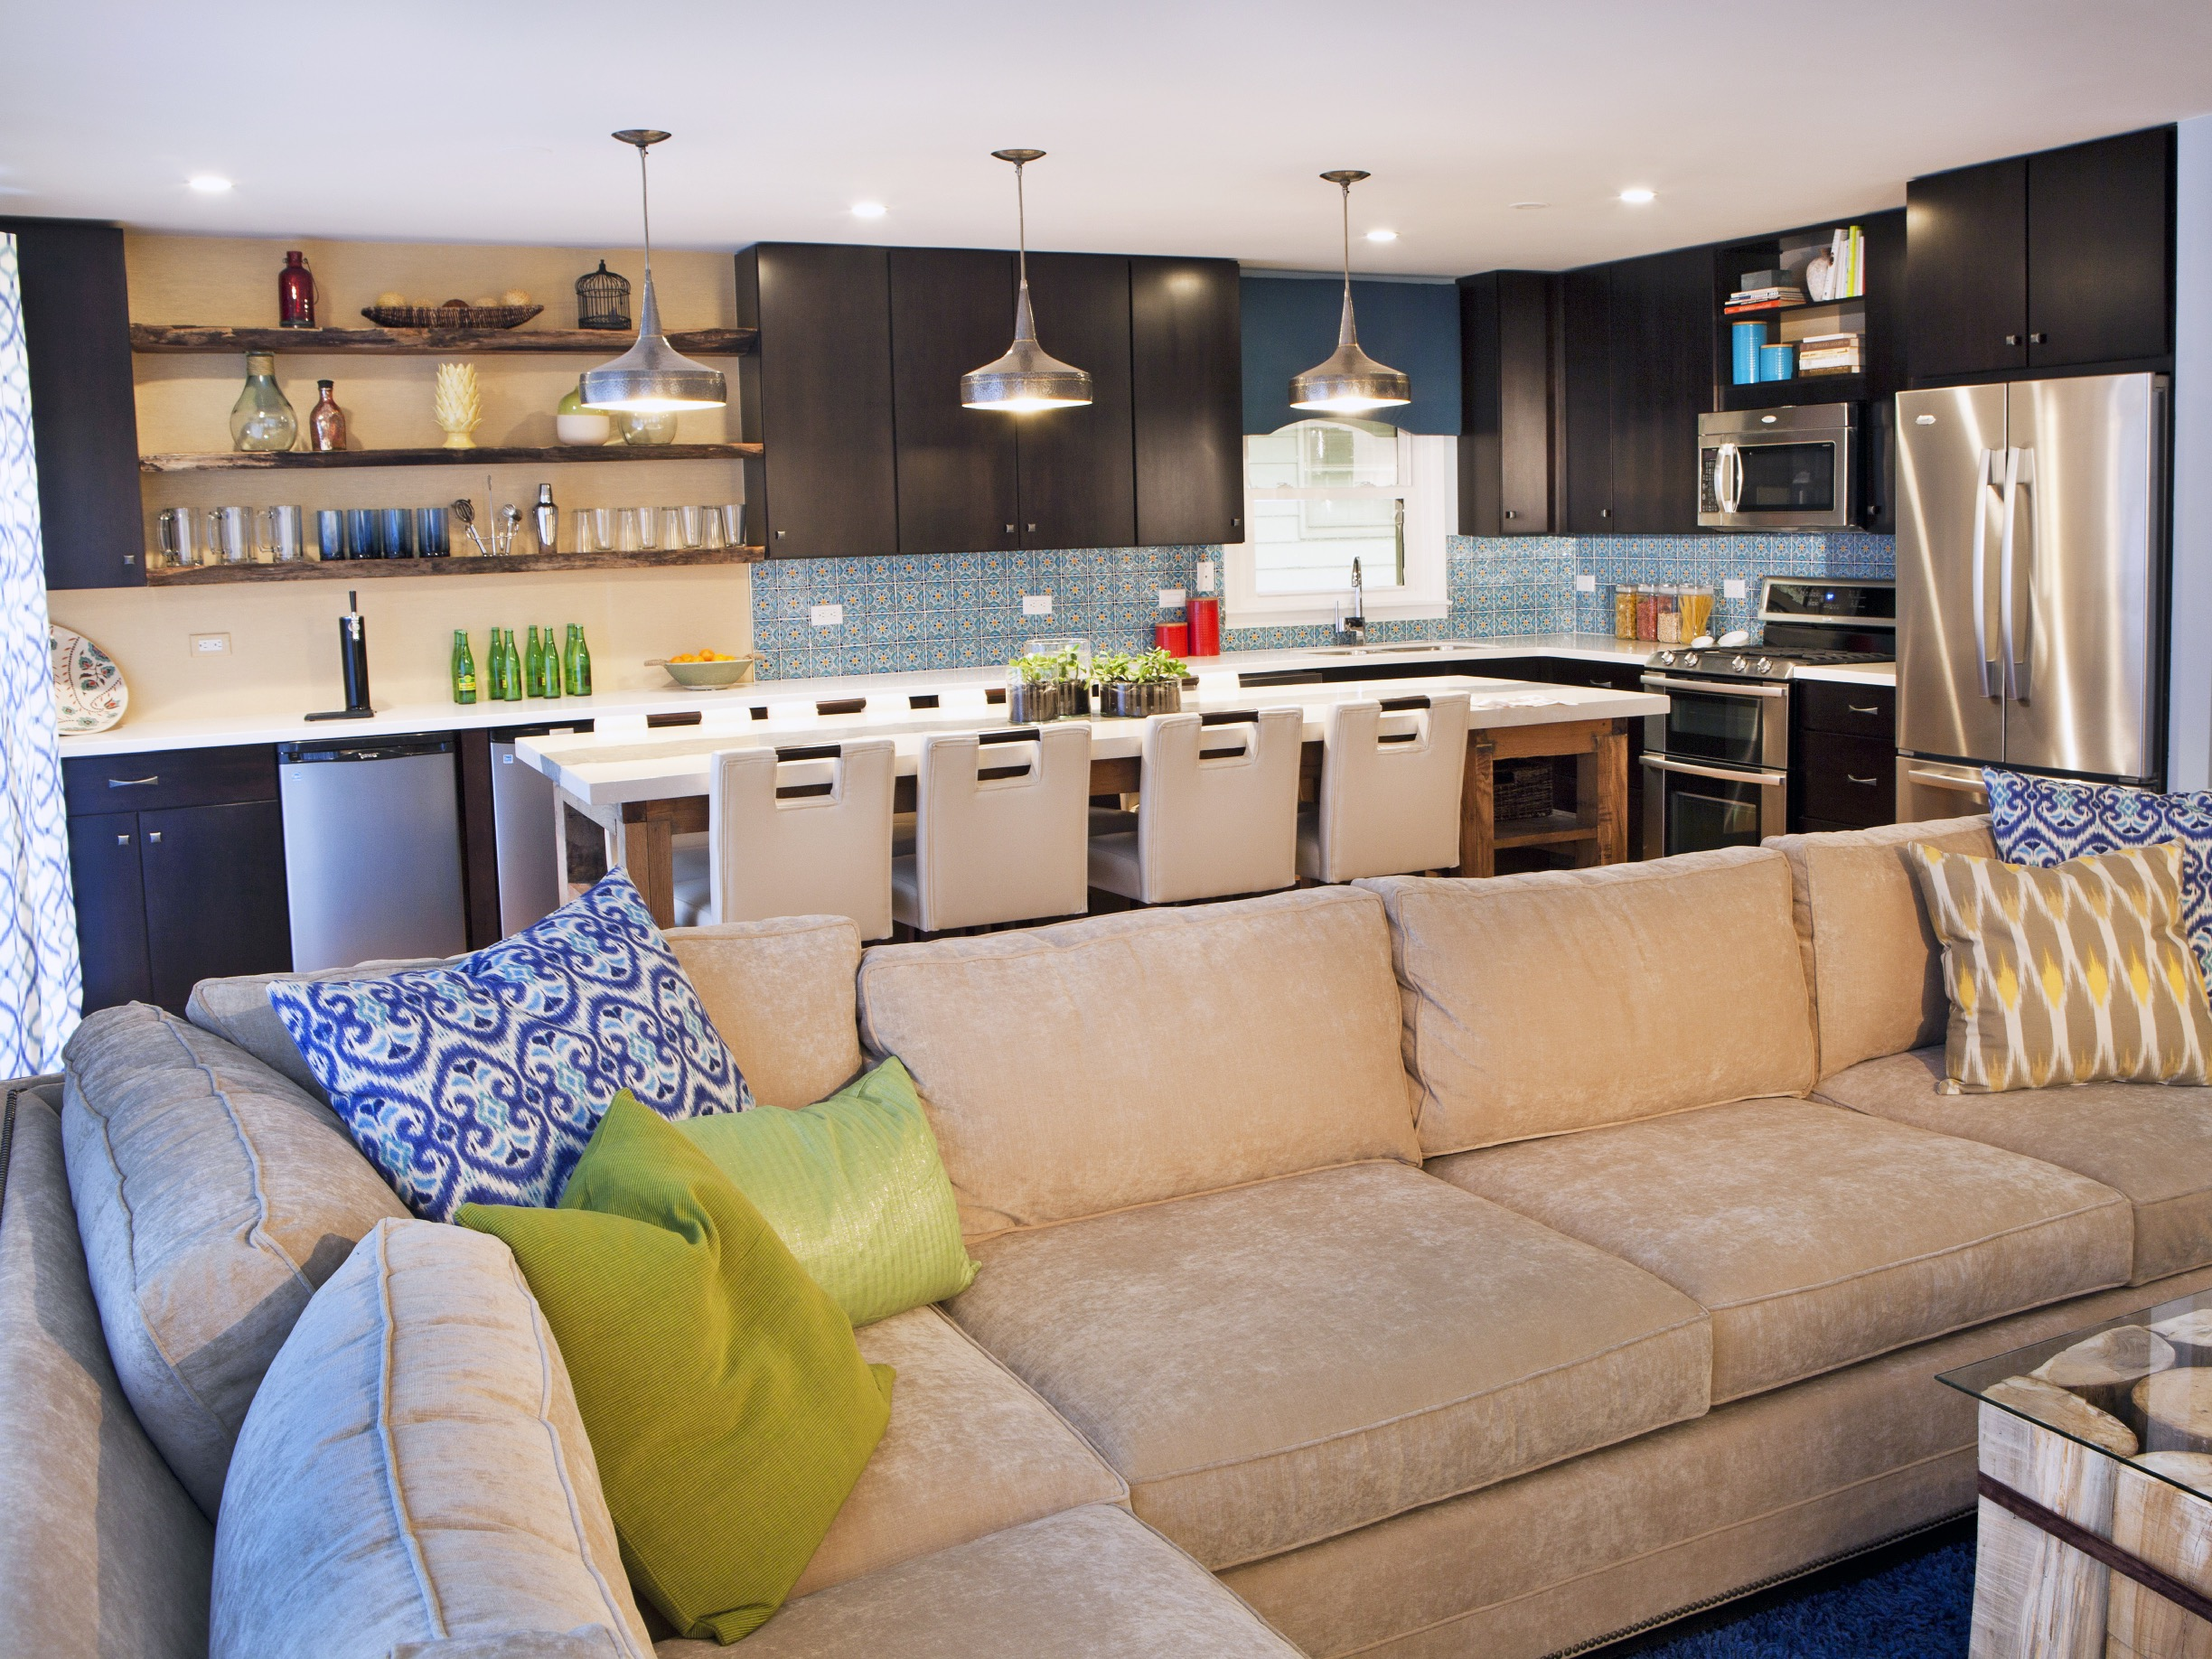 Contemporary Kitchen With Living Room Combo (Image 6 of 31)